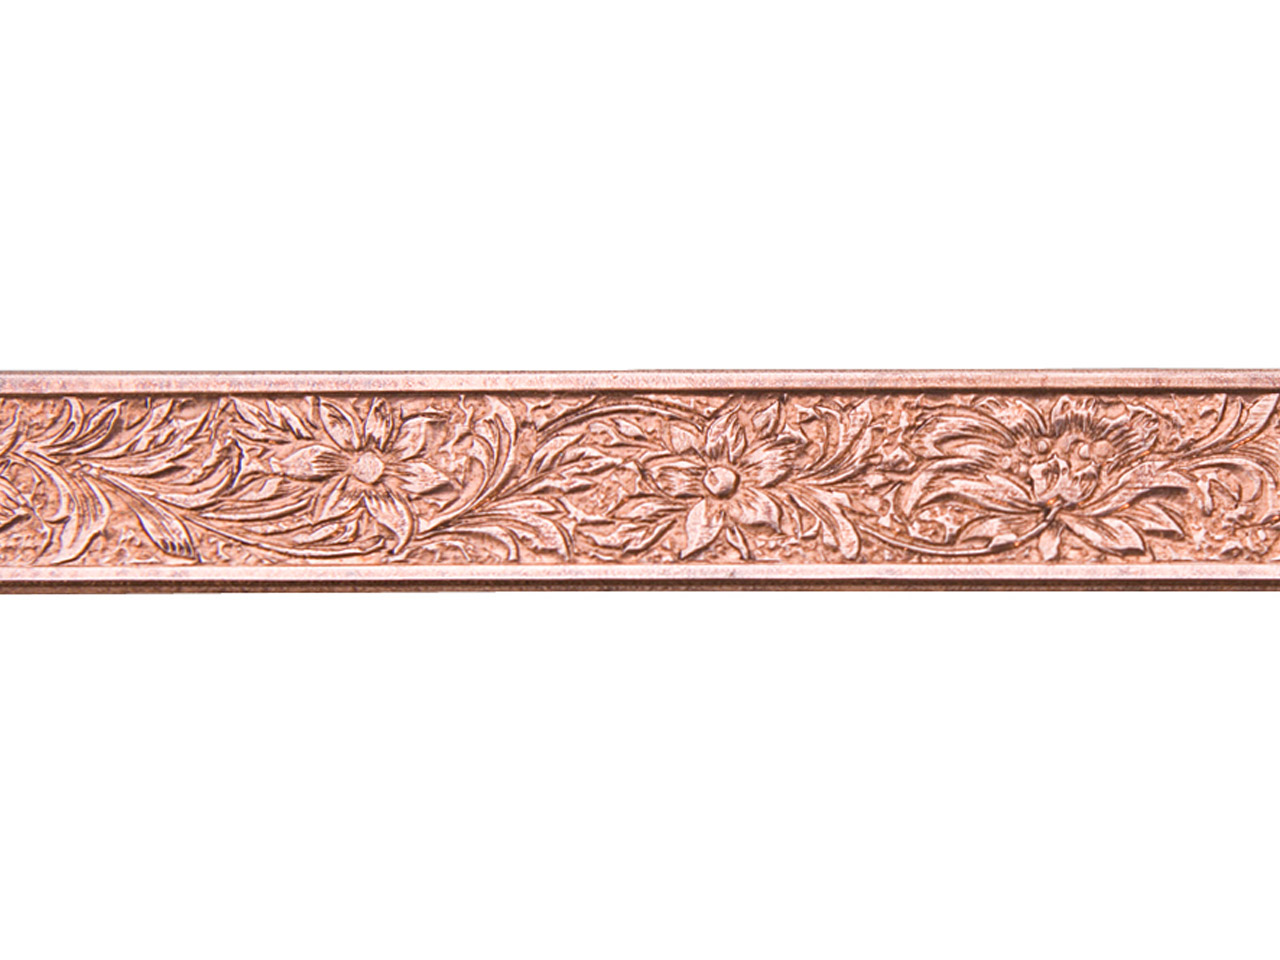 Copper Flower Patterned Wire 0.9mm X 6.4mm X 910mm